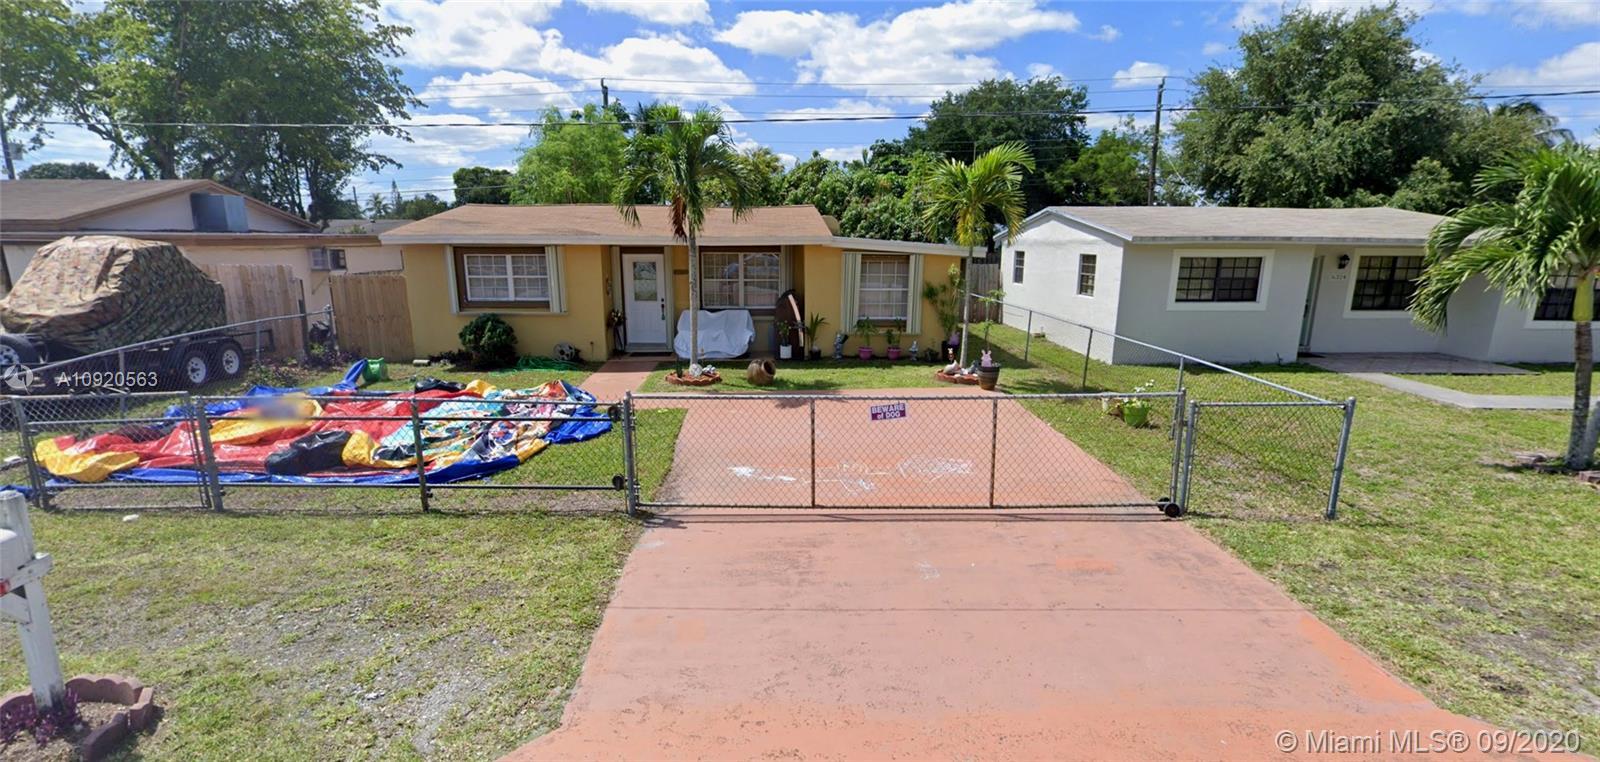 6320  Dewey St  For Sale A10920563, FL